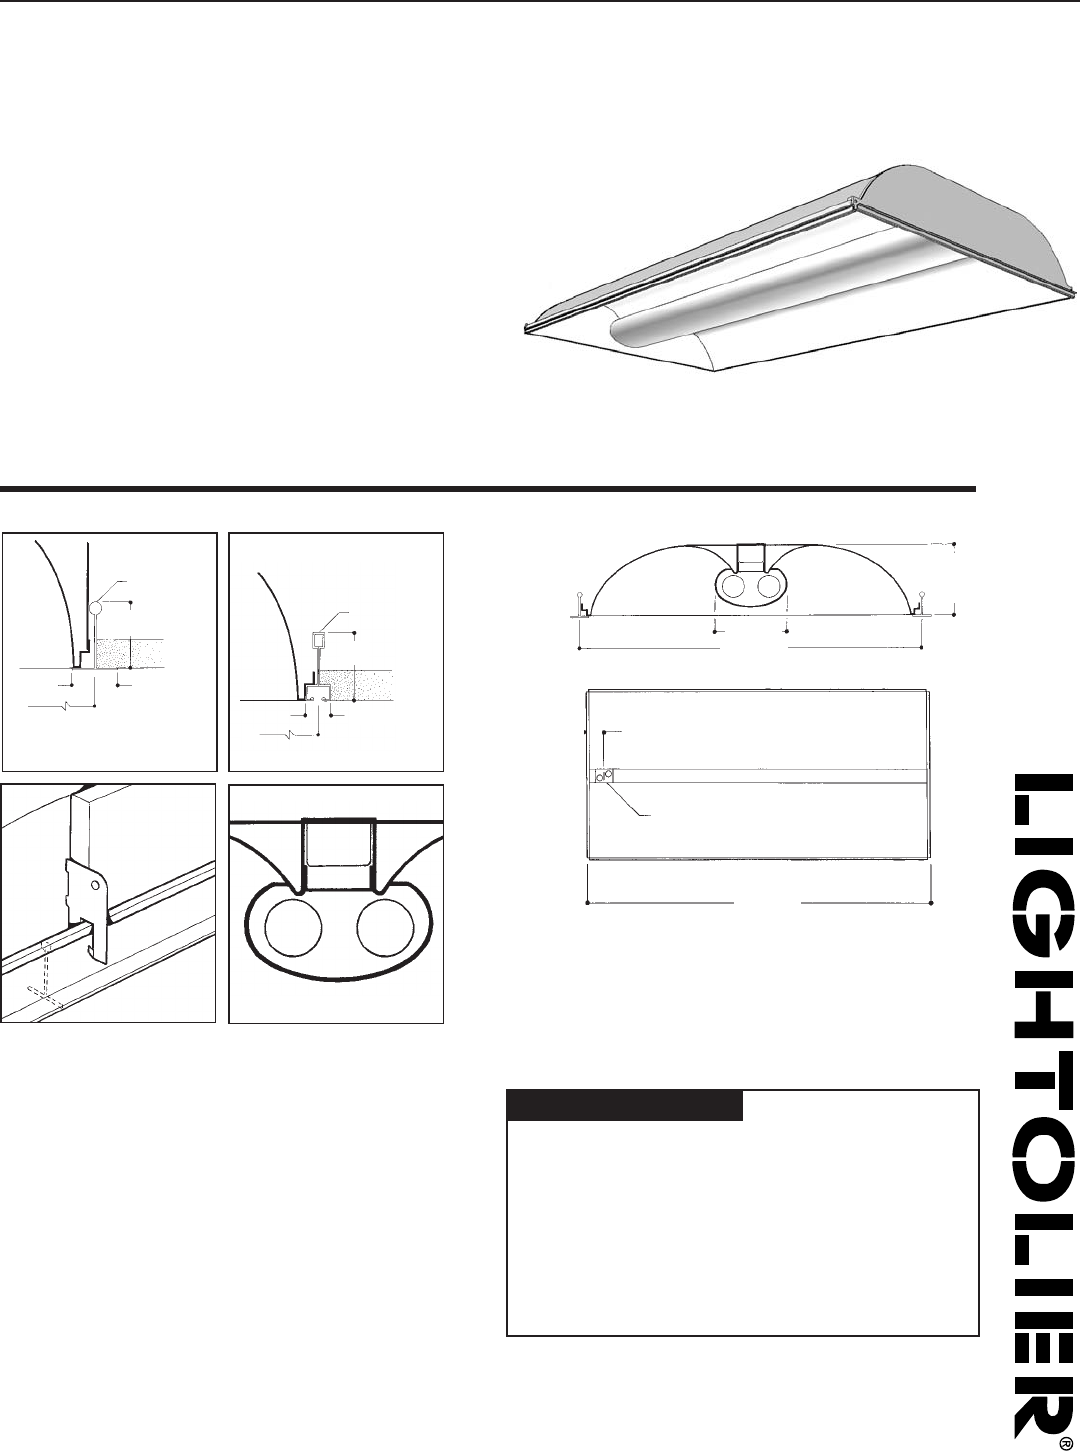 Lightolier Indoor Furnishings H9S2GLR232 User Guide